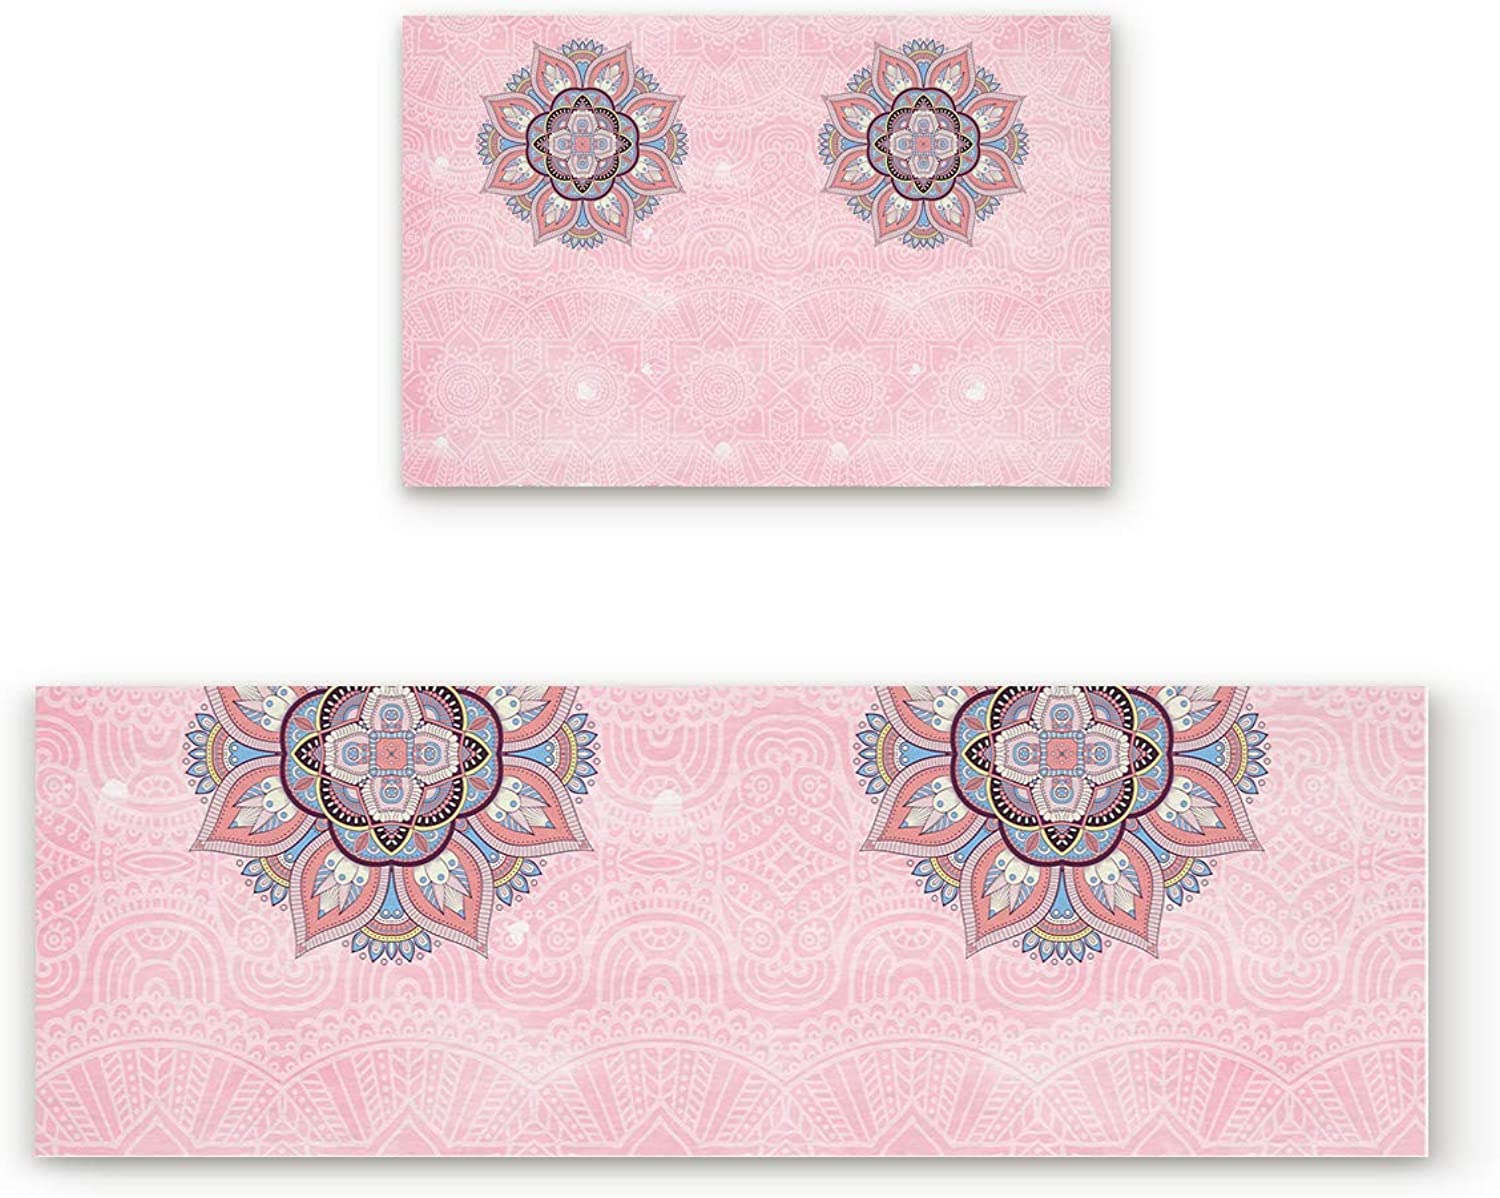 Kitchen Rugs Sets 2 Piece Floor Mats Indian Mandala Pink Floral Pattern Doormat Non-Slip Rubber Backing Area Rugs Washable Carpet Inside Door Mat Pad Sets (19.7  x 31.5 +19.7  x 47.2 )